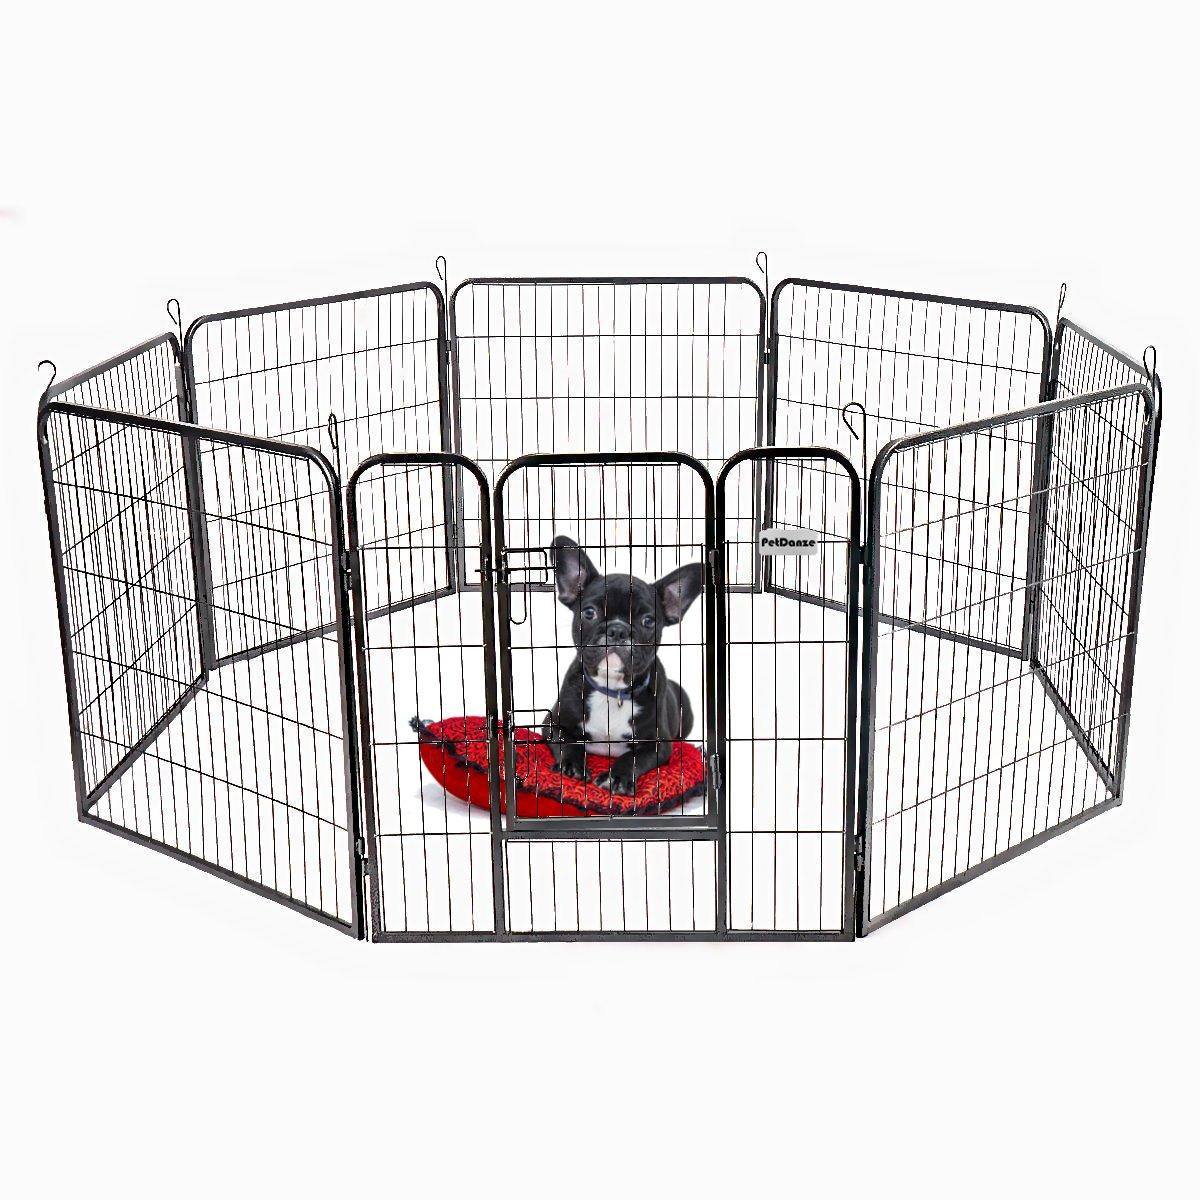 PetDanze Dog Pen Metal Fence Gate Portable Outdoor | Heavy Duty Outside Pet Large Playpen Exercise RV Play Yard | Indoor Puppy Kennel Cage Crate Enclosures | 32'' Height 8 Panel